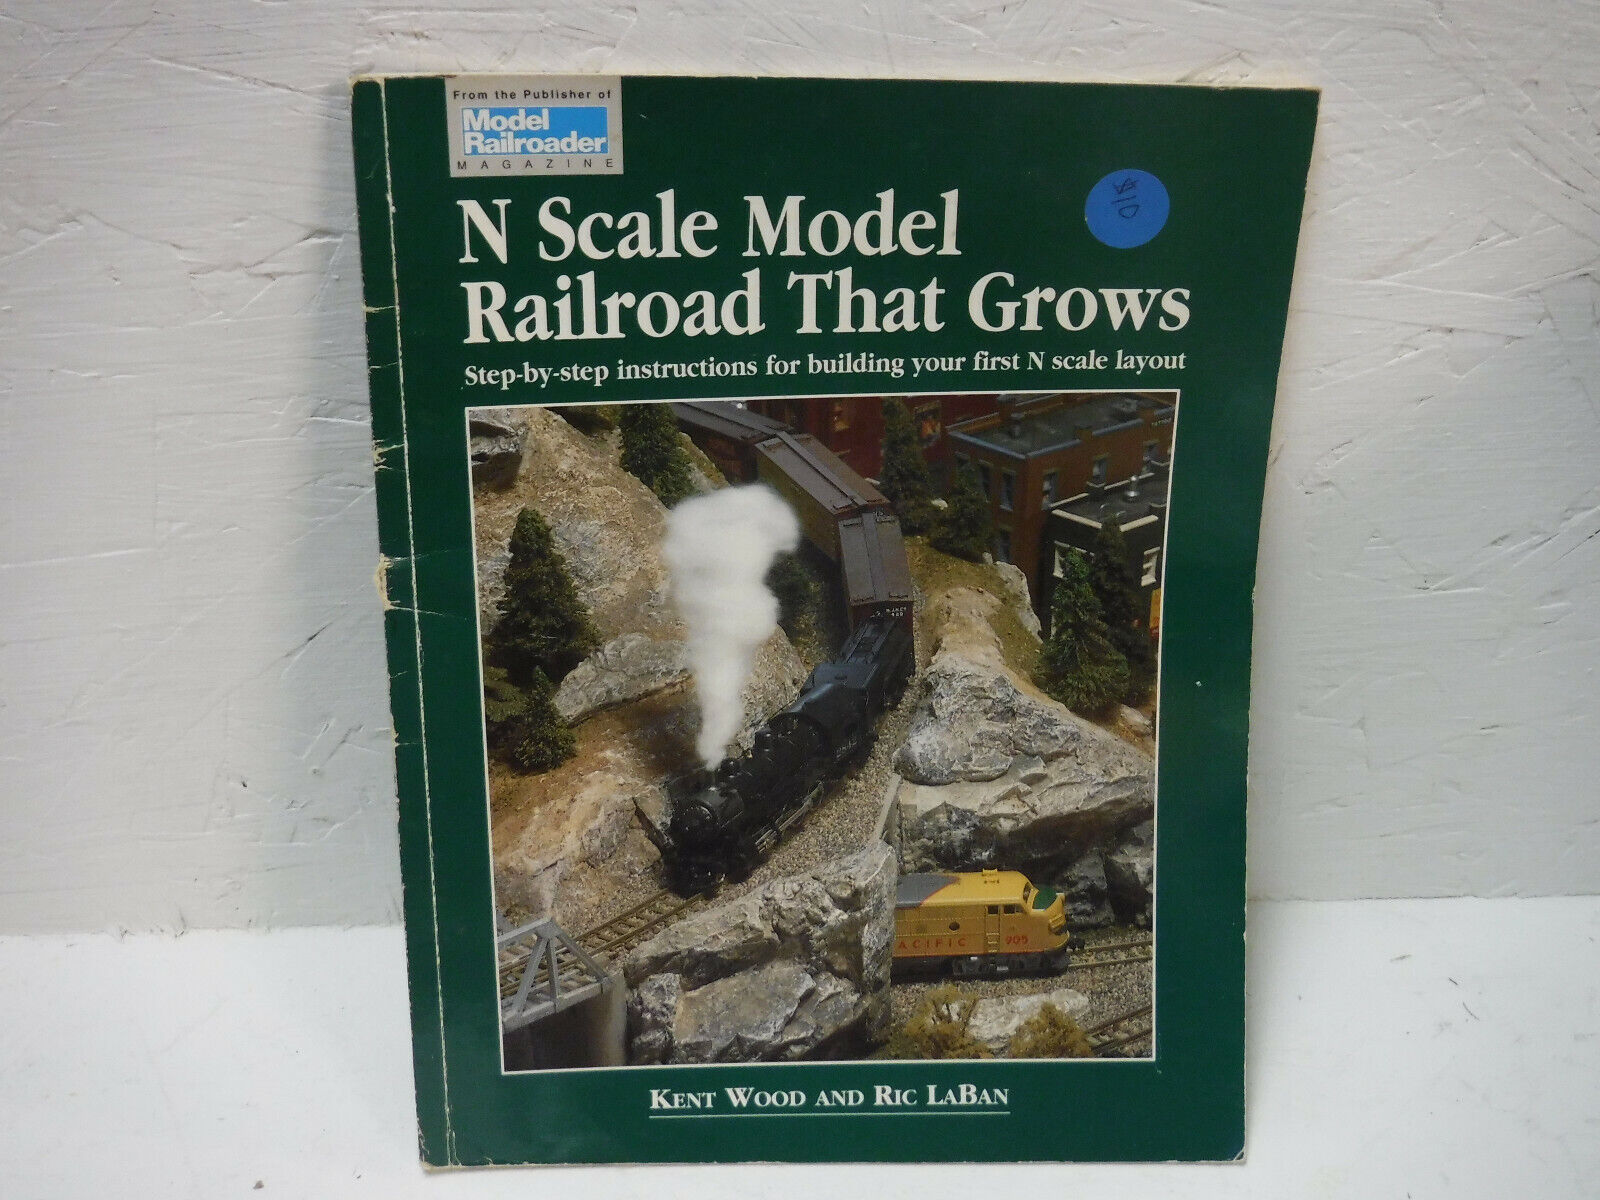 N Scale Model Railroad That Grows - $10.00